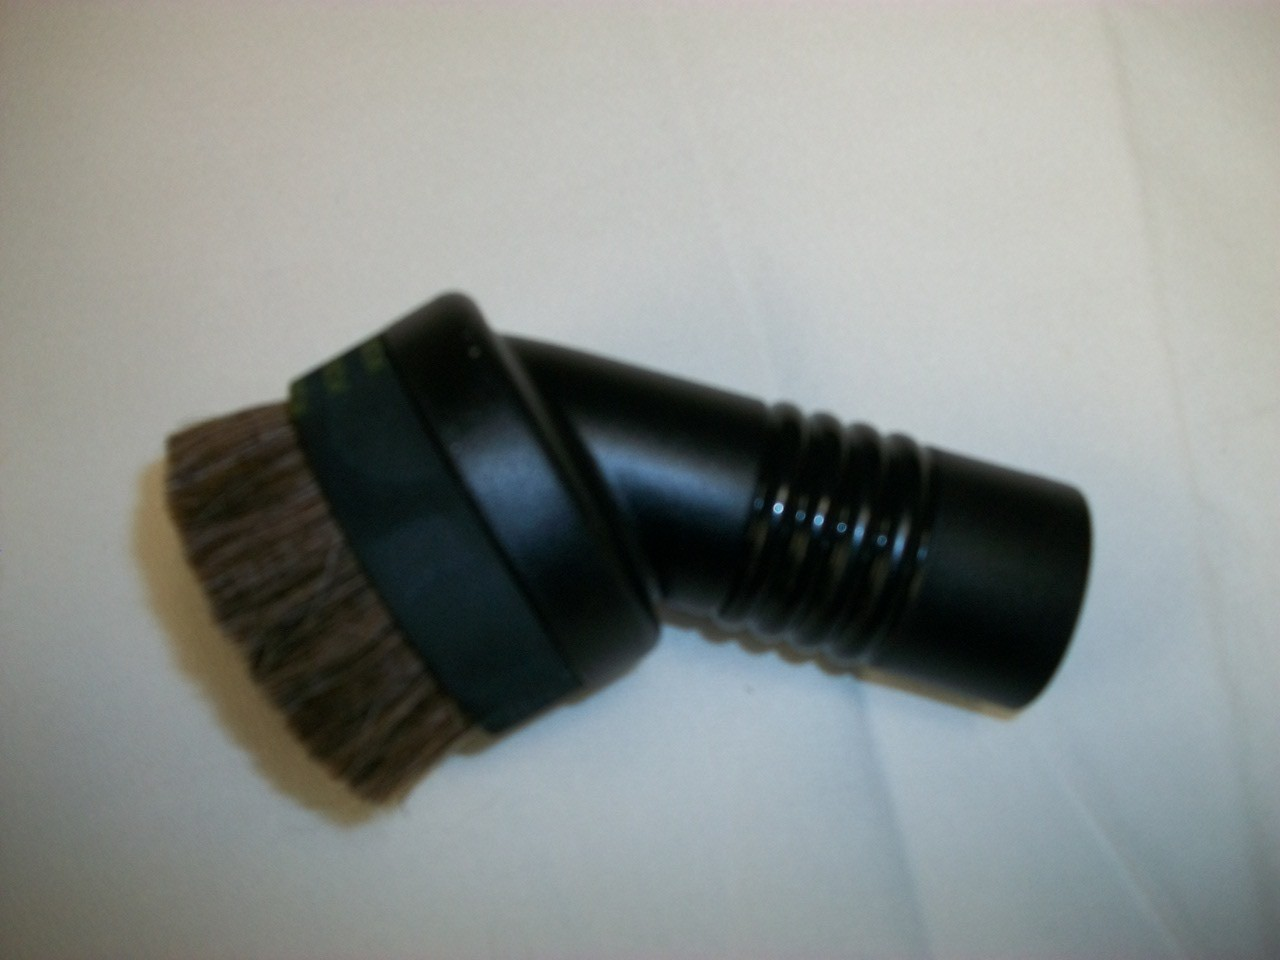 Kirby Dust Brush For the G4